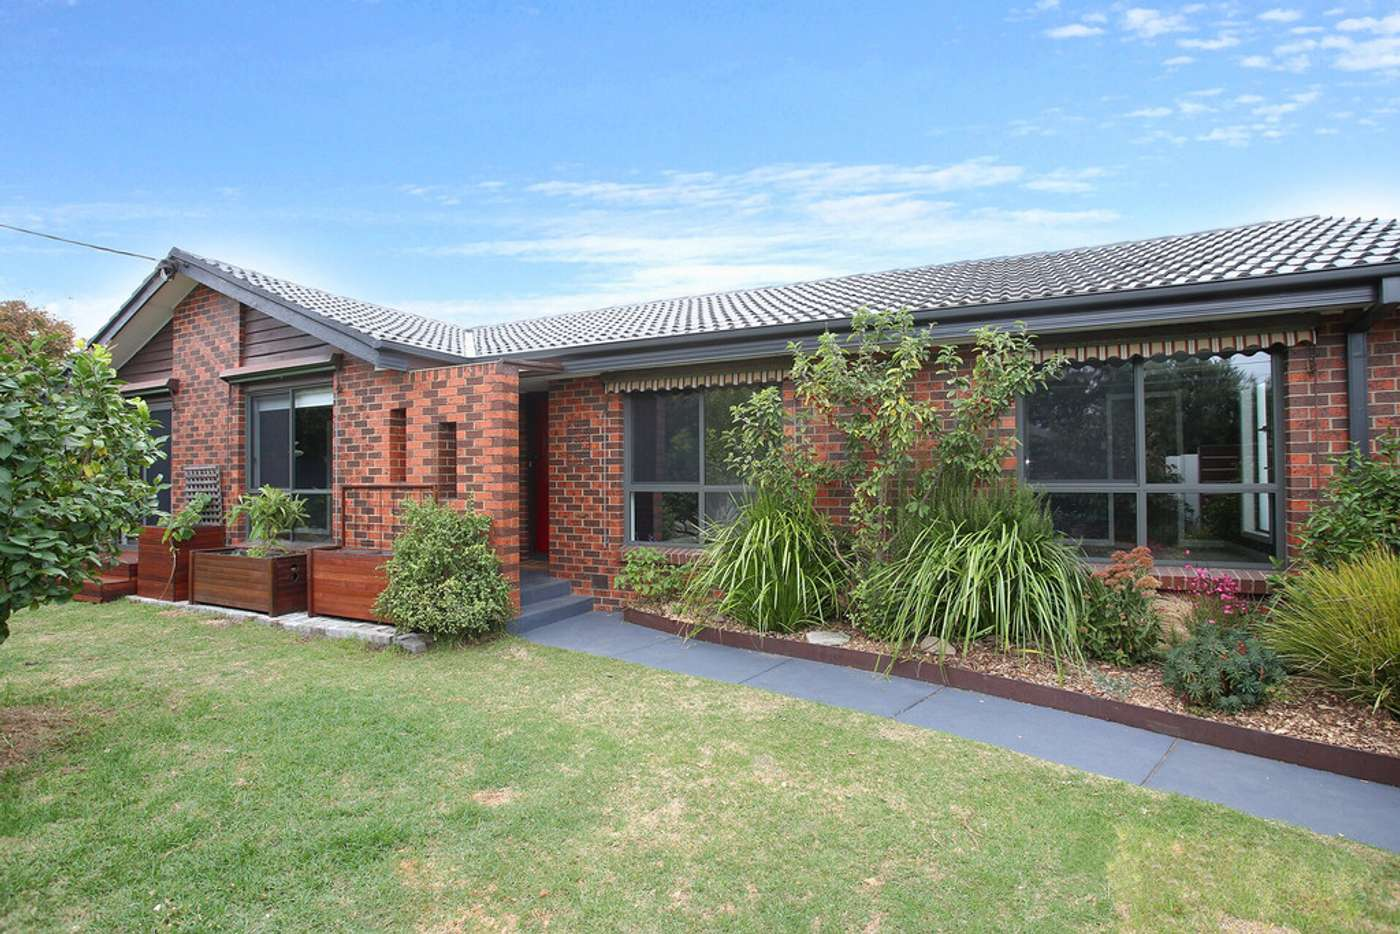 Main view of Homely house listing, 1/4 Hilda Street, Cheltenham VIC 3192